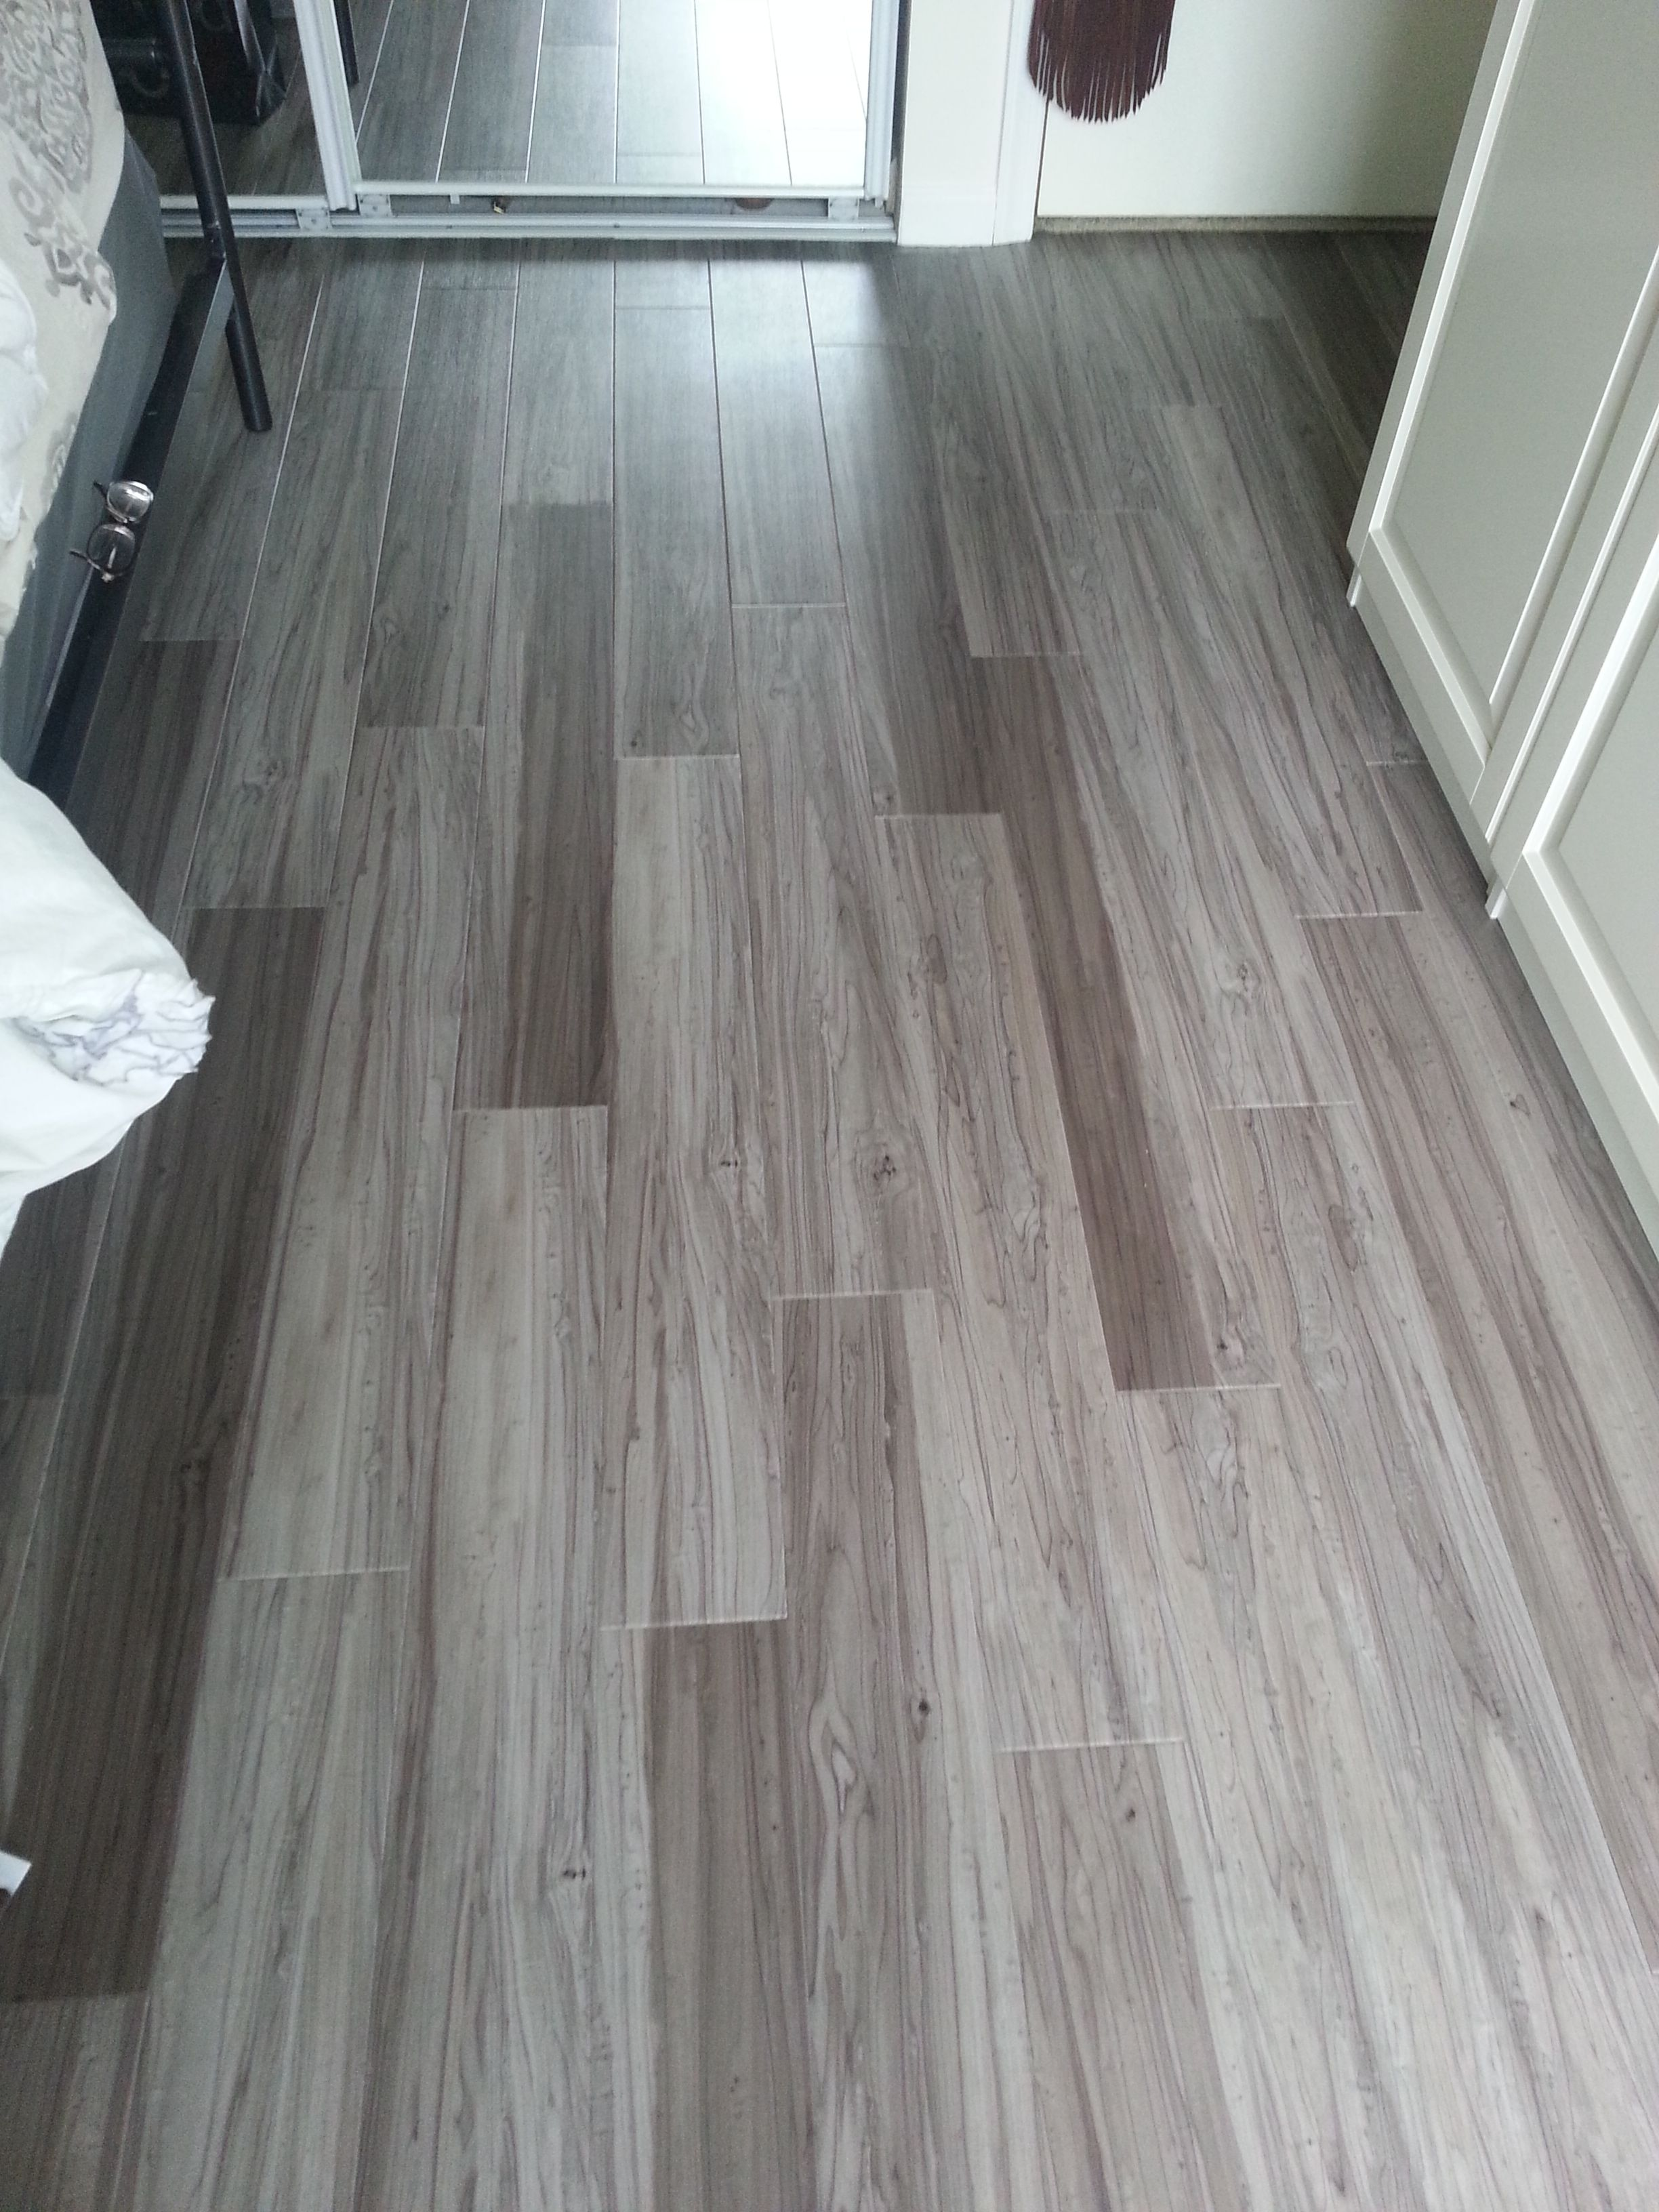 5 in x 36 in Grey Maple Resilient Vinyl Plank Flooring 22 5 sq